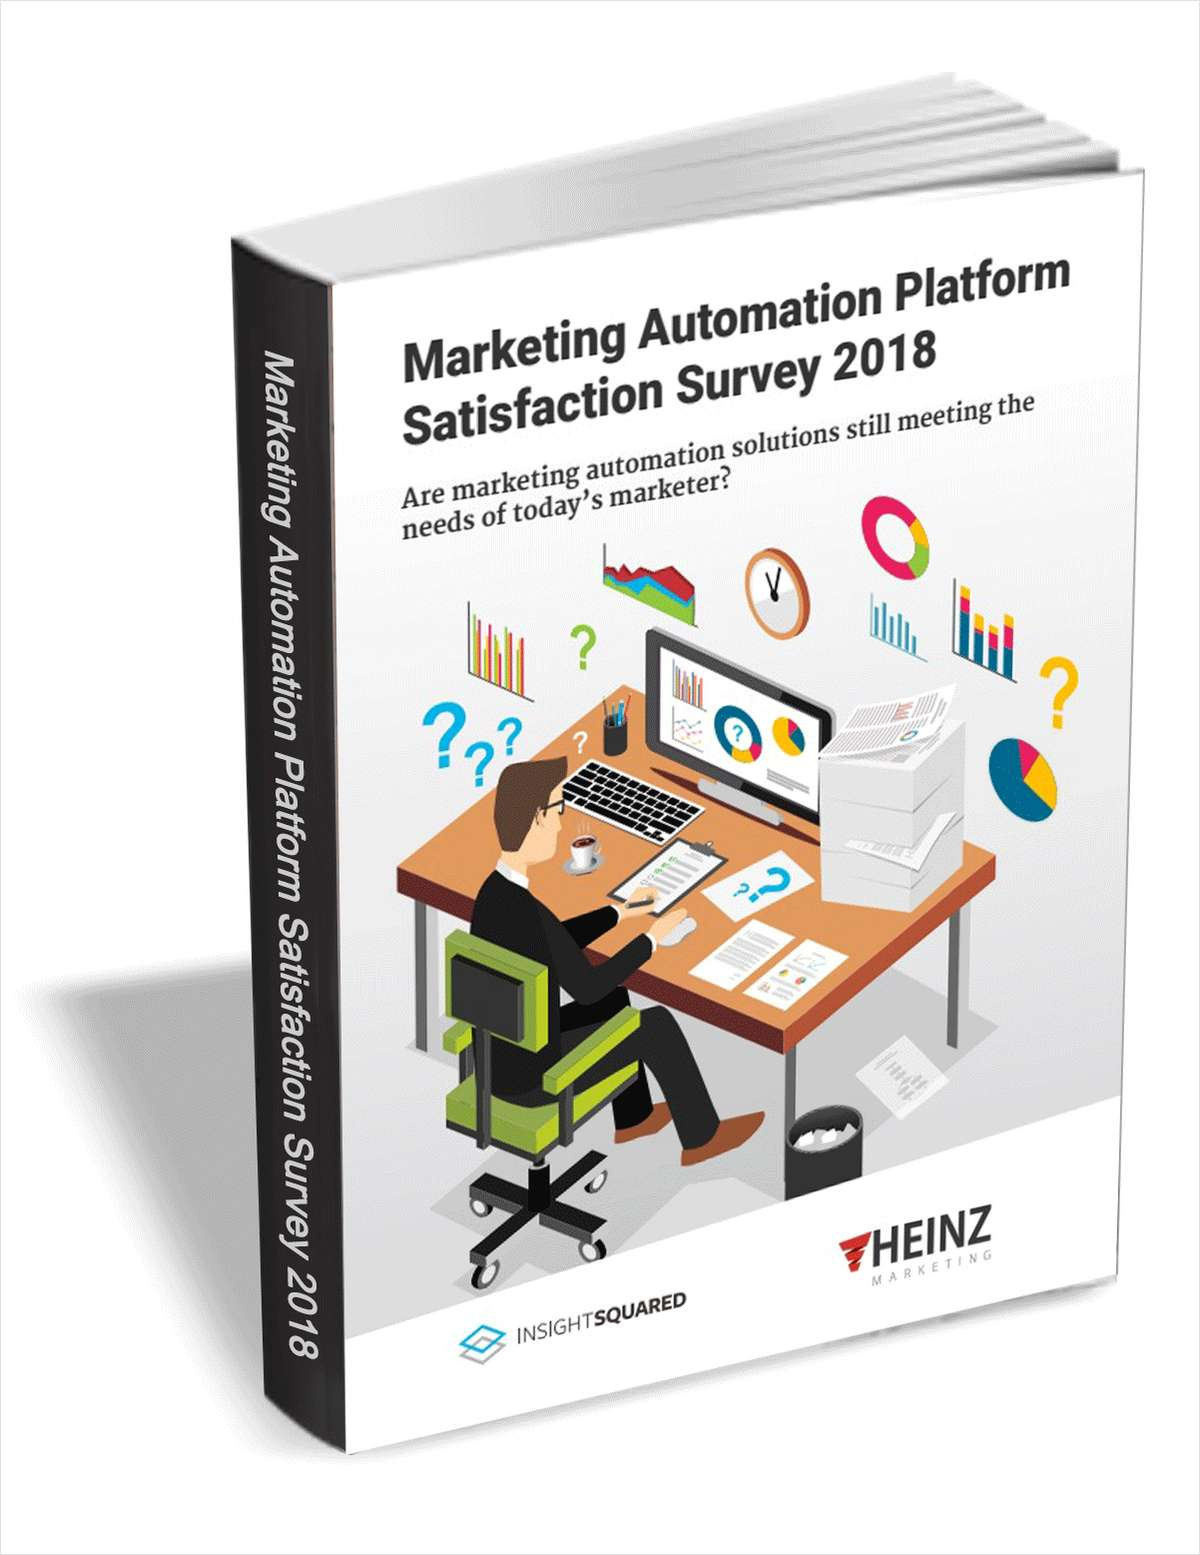 Marketing Automation Platform Satisfaction Survey 2018